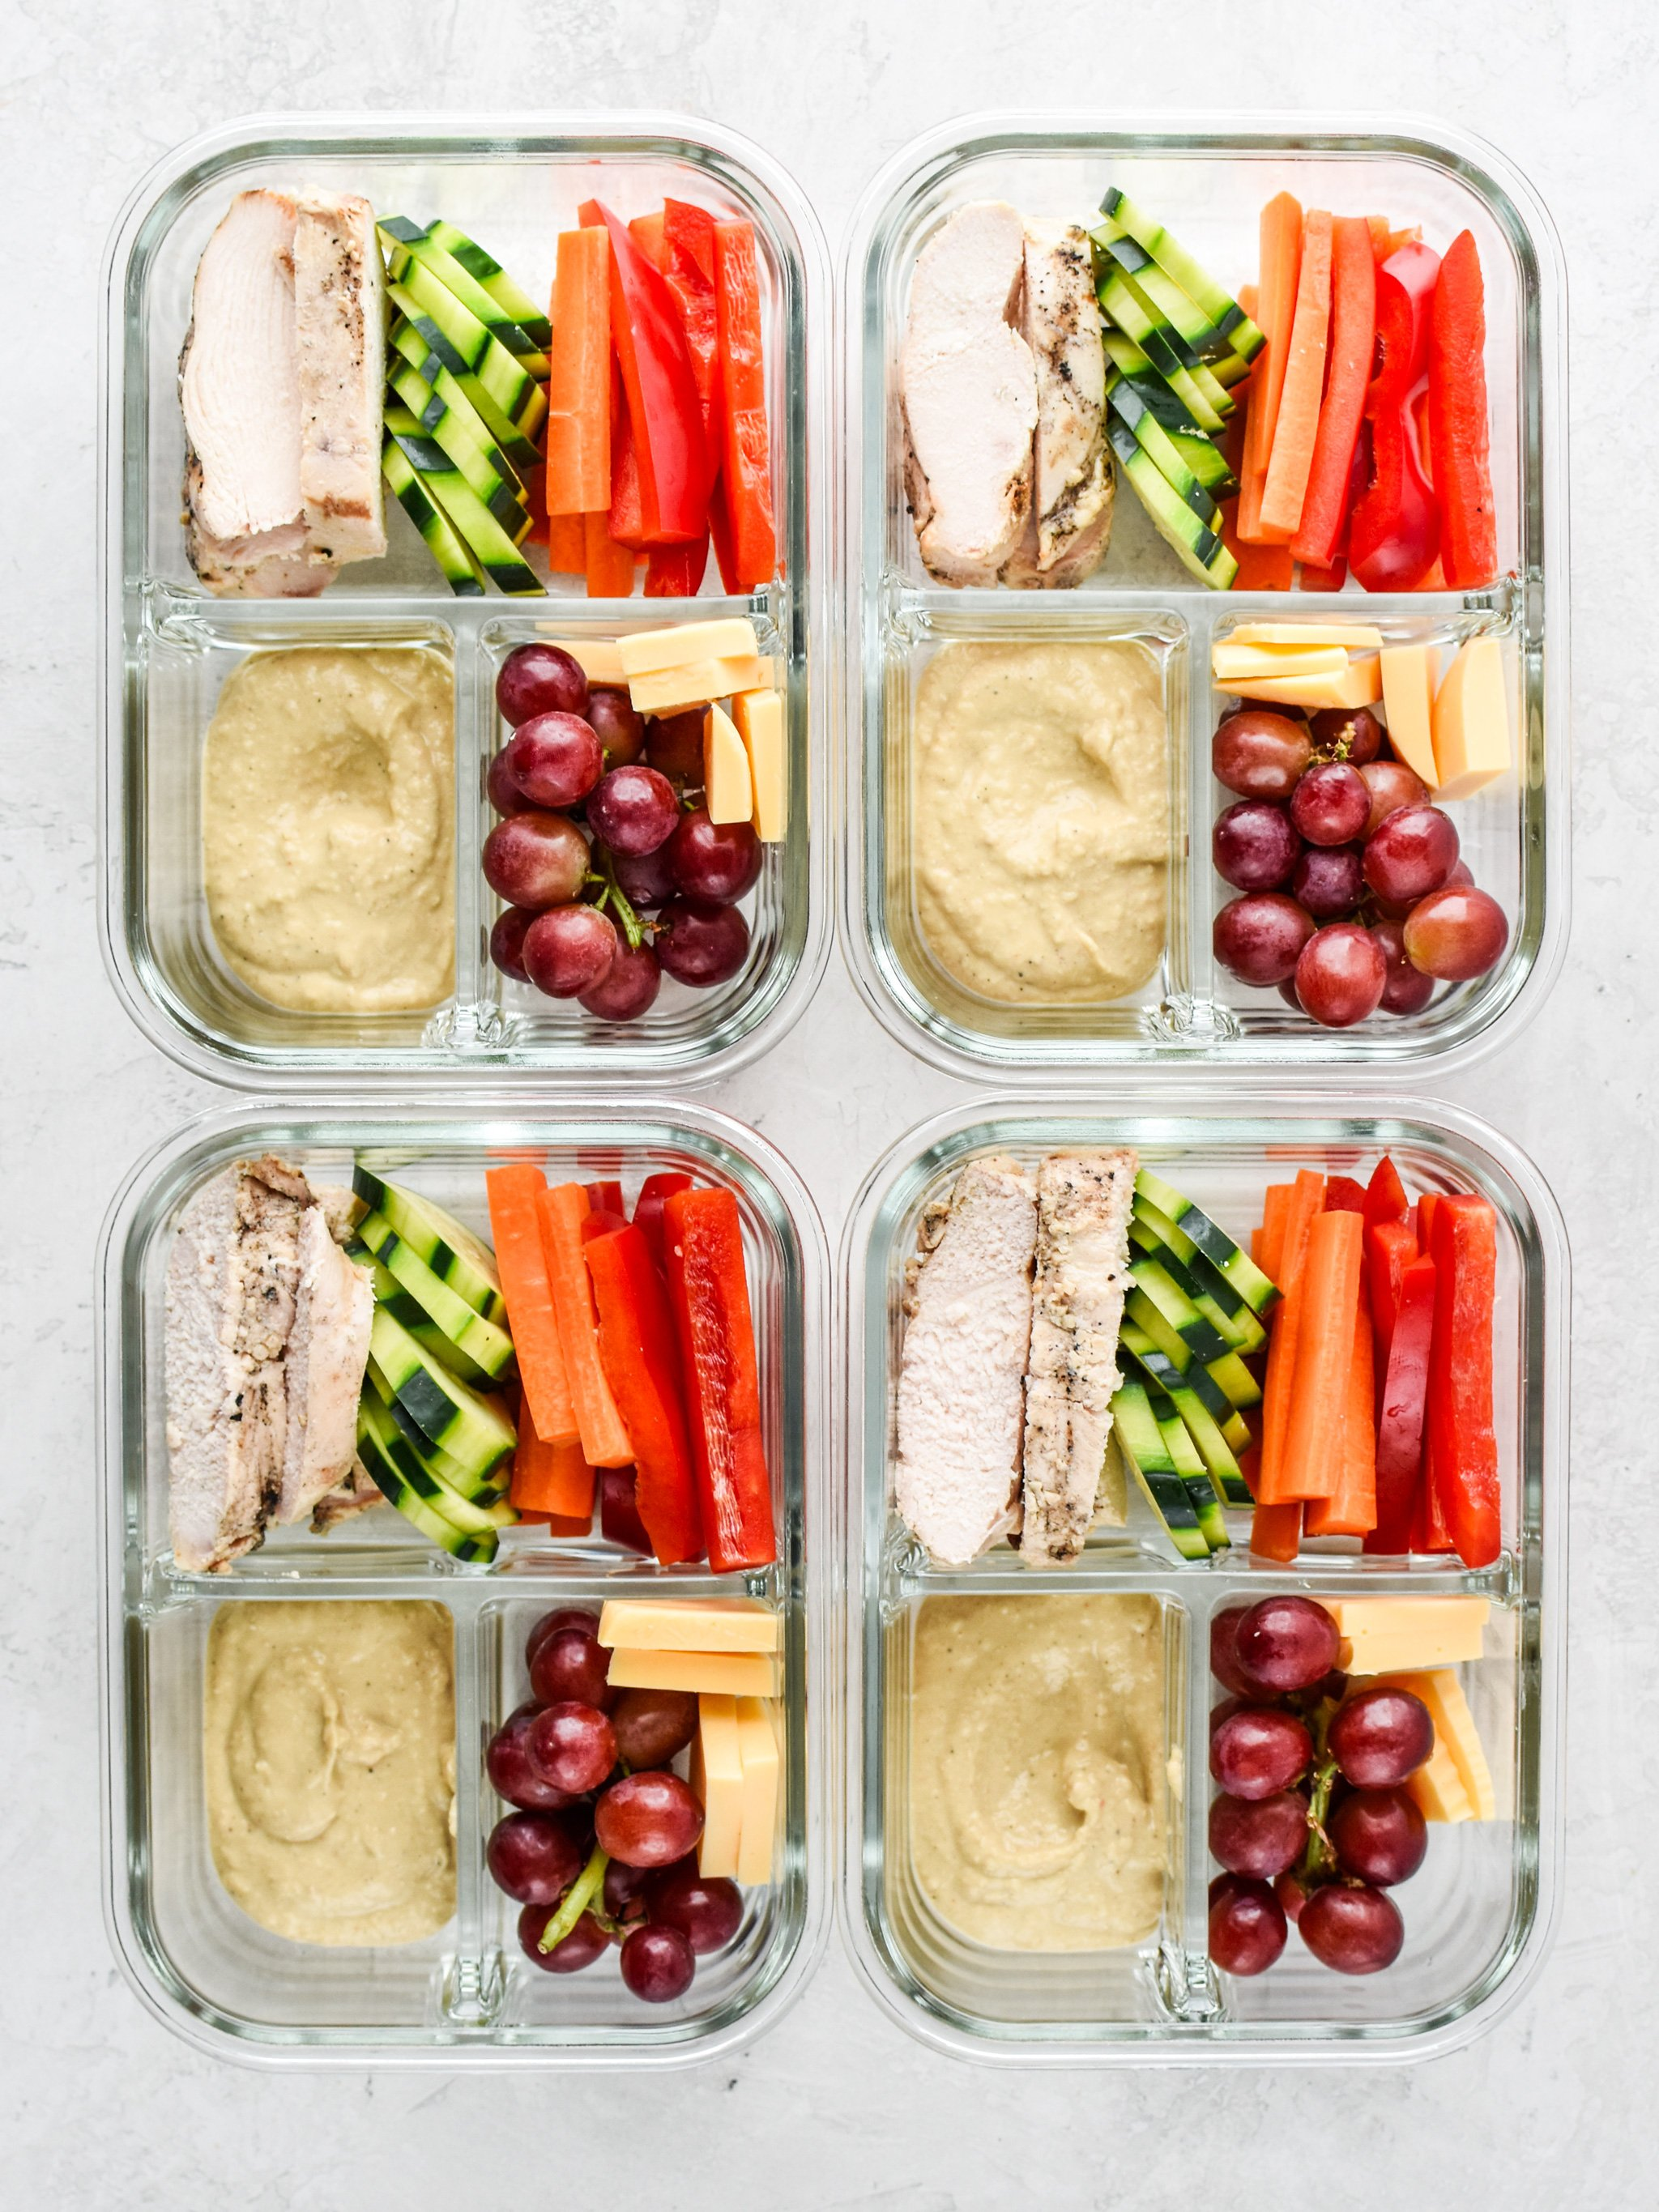 This is the chicken & hummus plate lunch meal prep is a great idea for meal prepping in hot weather.